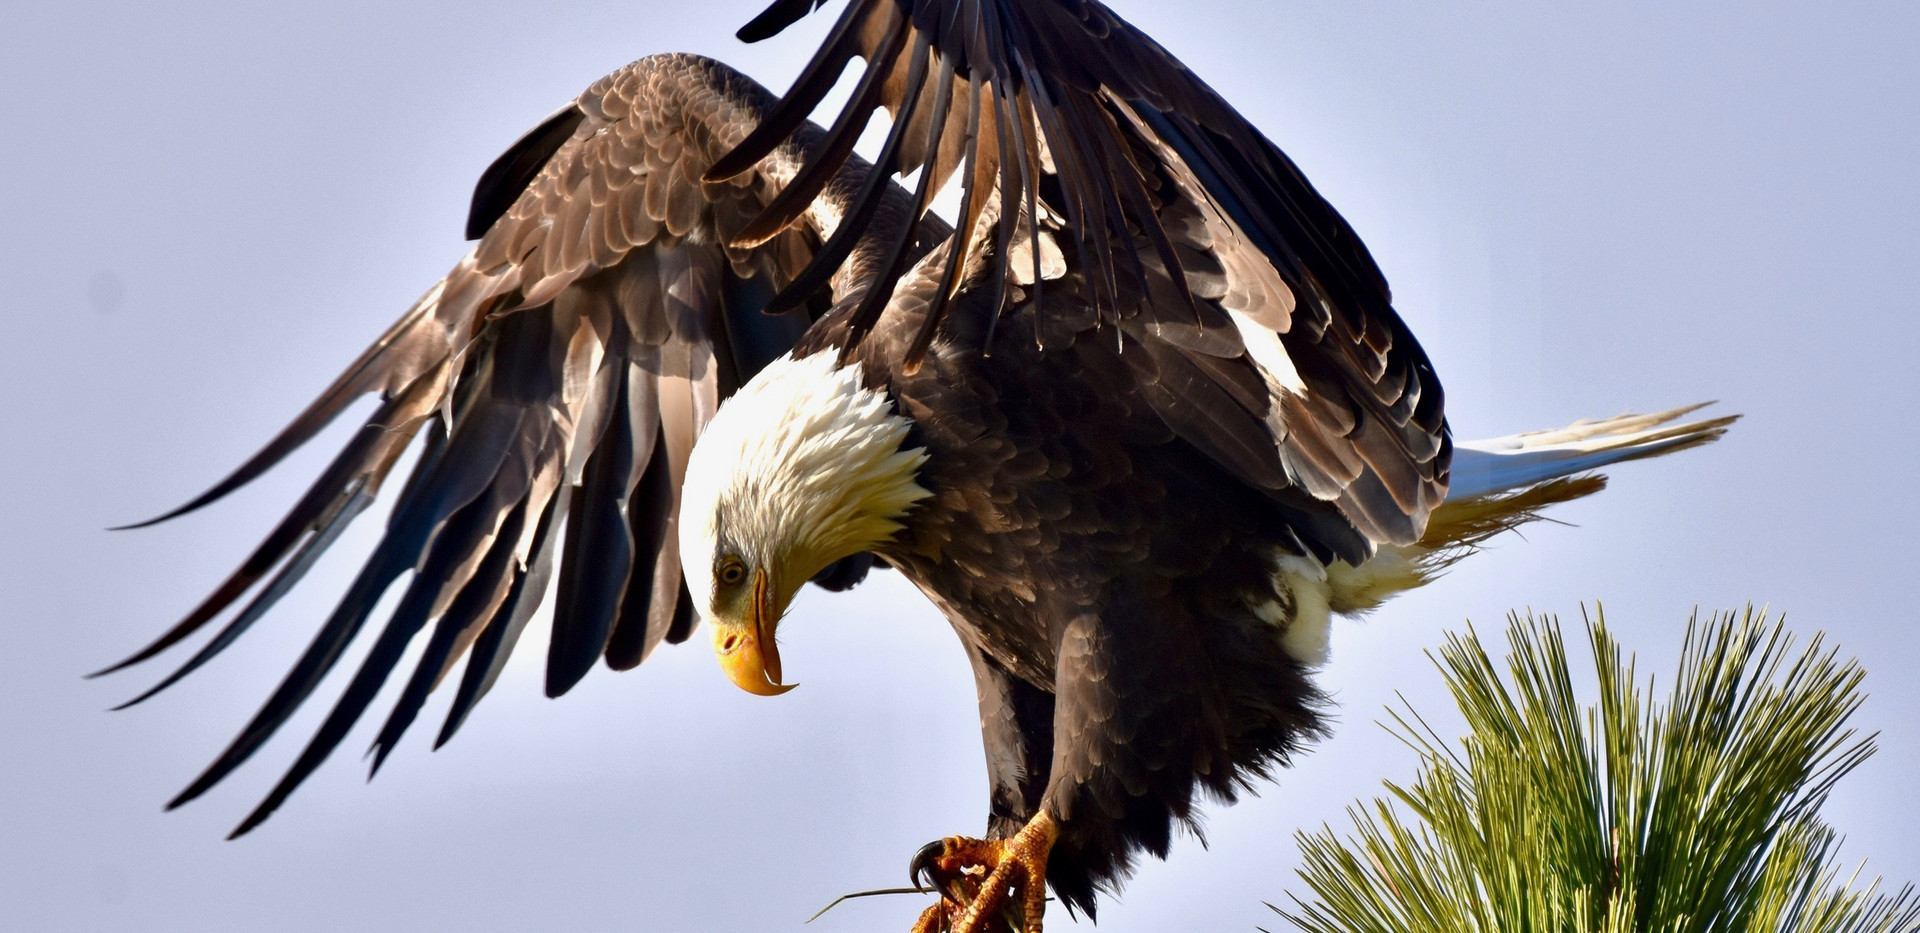 Eagle tree top feathers jagged 2020****